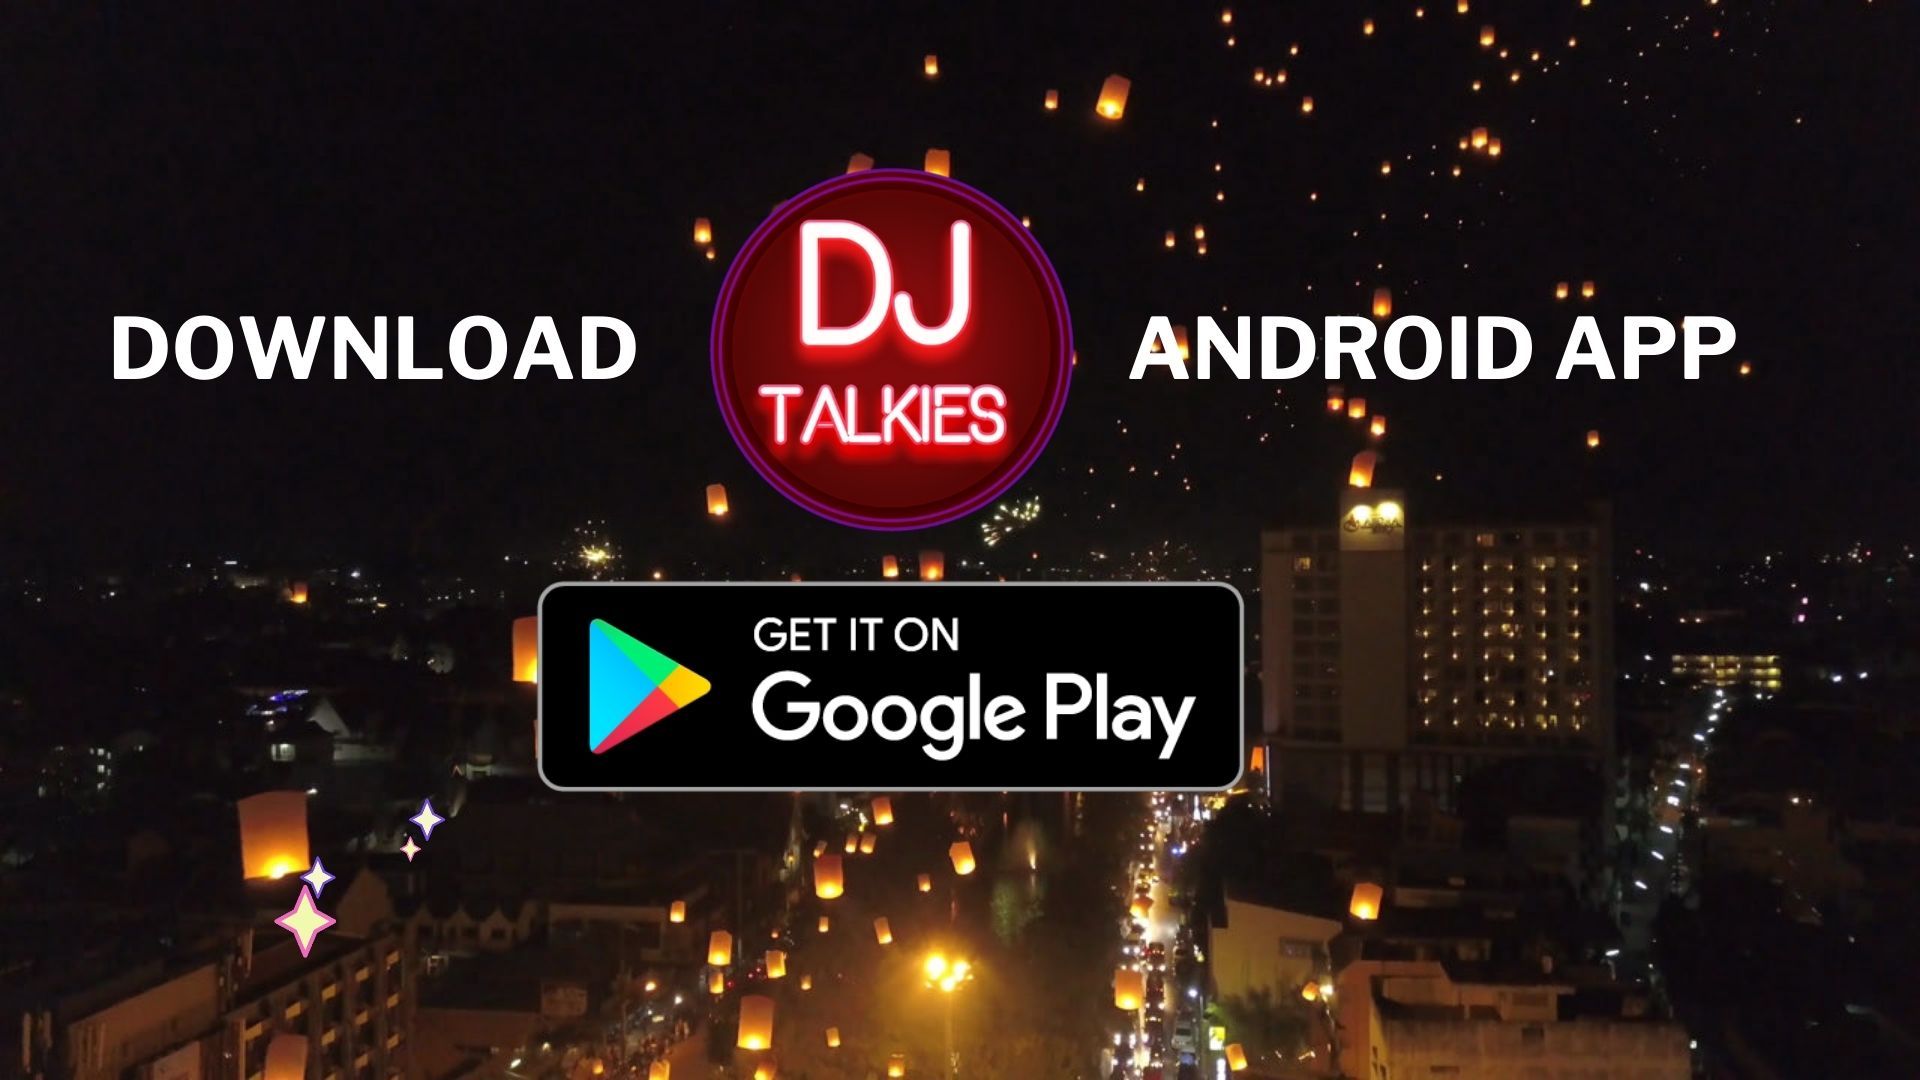 Download DJ Talkies Android App